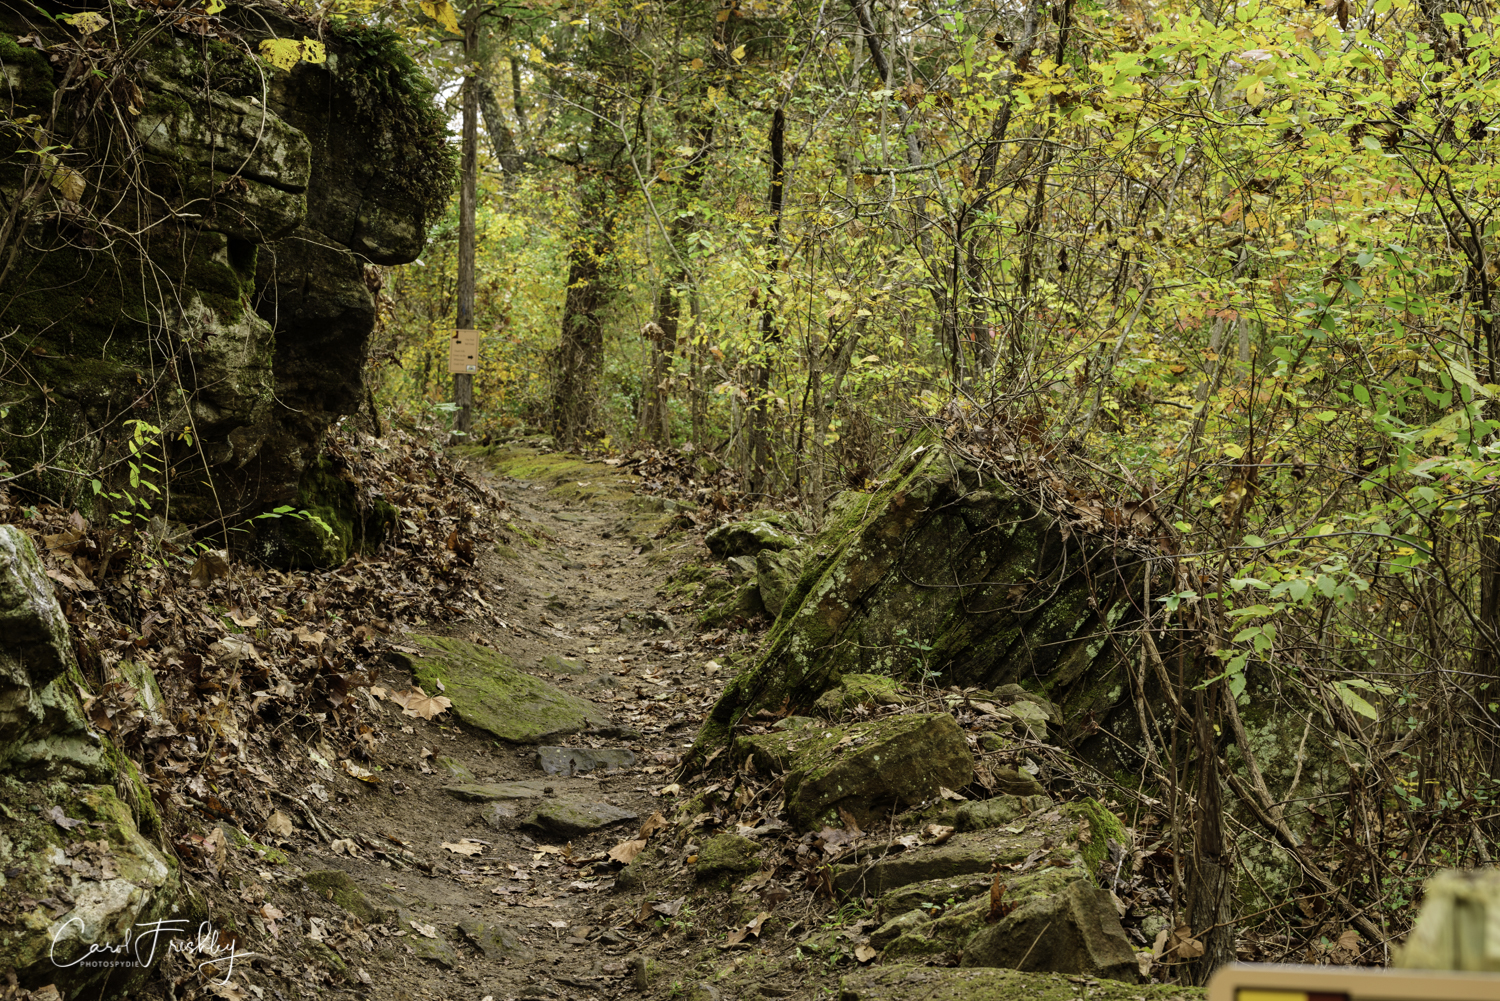 The volunteers told us it is an easy hike to the Ozark Folk Center. They were clearing the path.